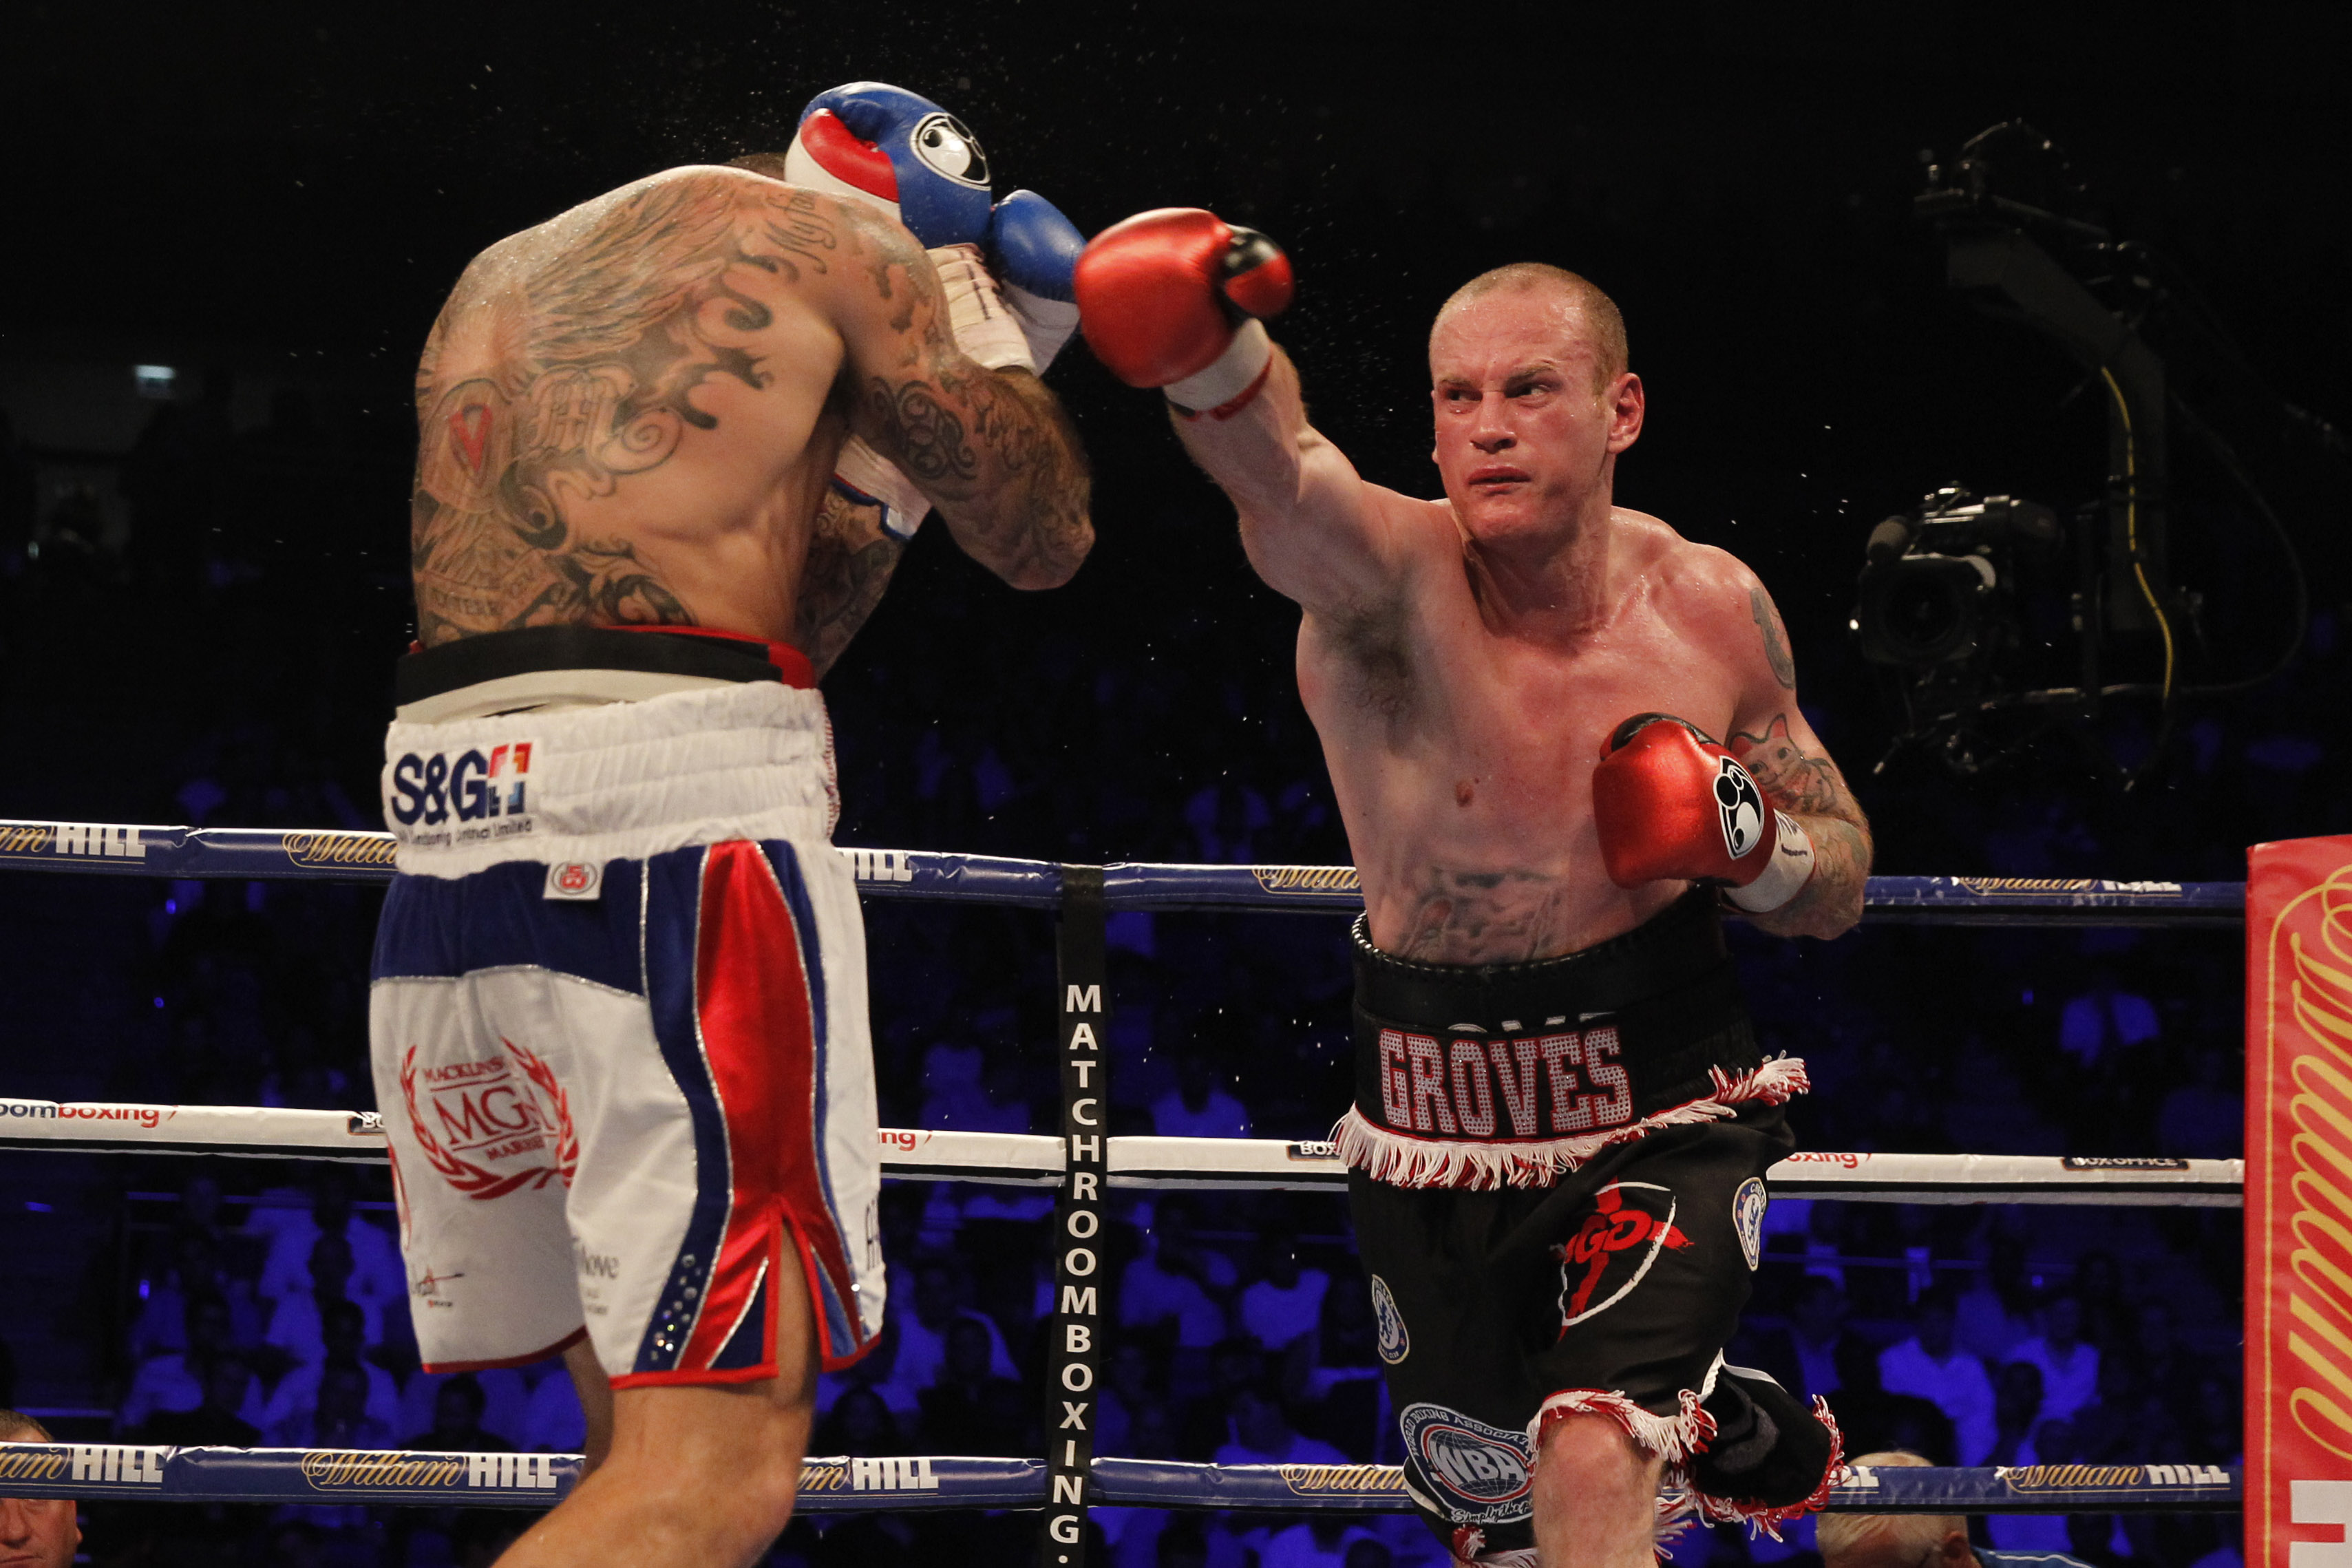 George Groves believes he is back to his best ahead of Chudinov fight